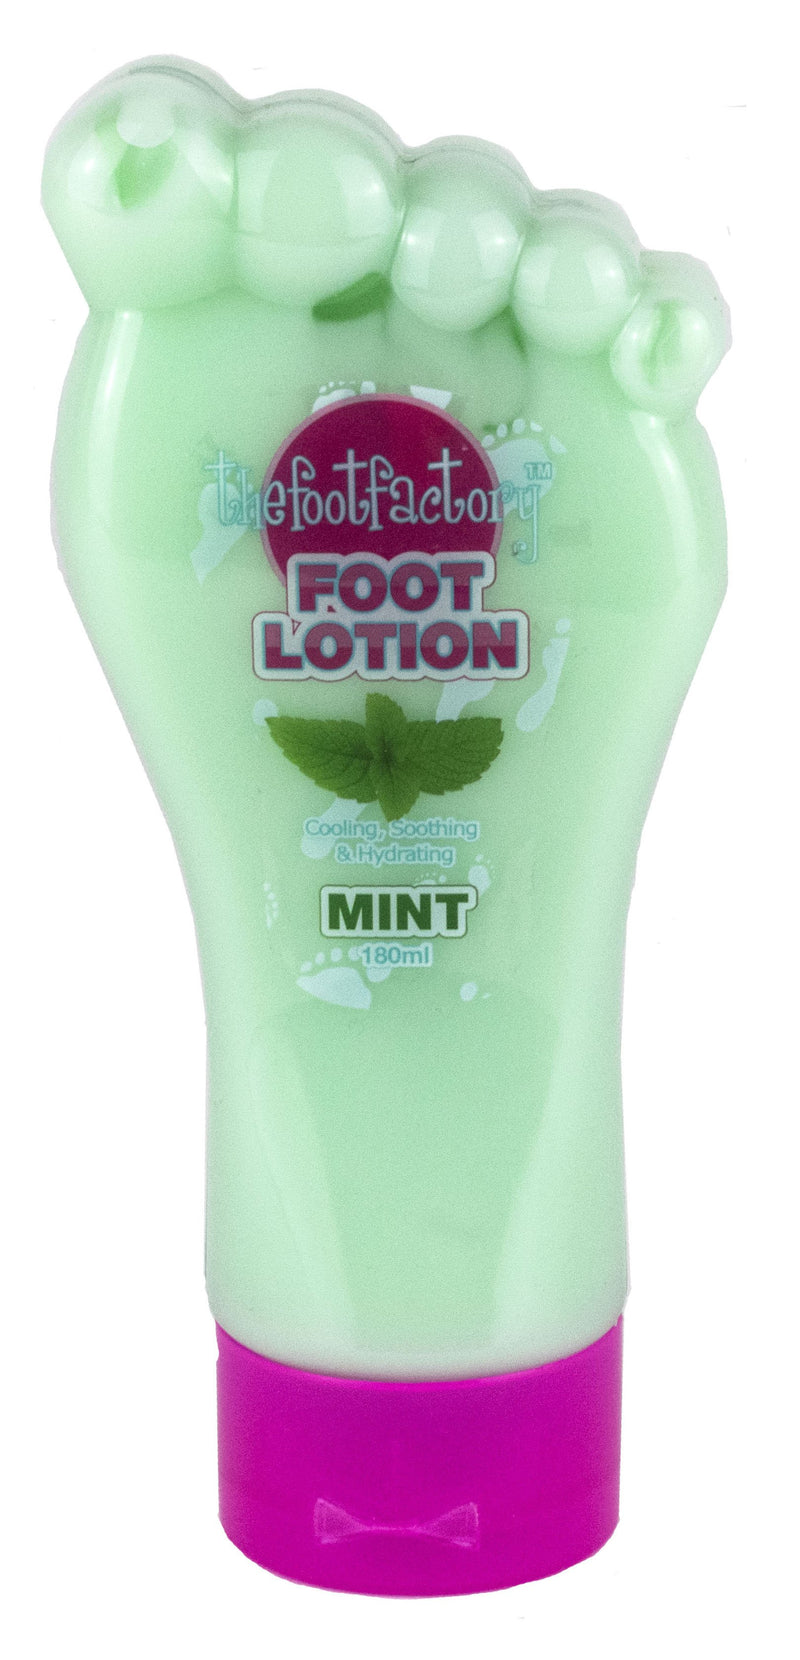 The Foot Factory Foot Lotion Peppermint 180ml - FabFinds